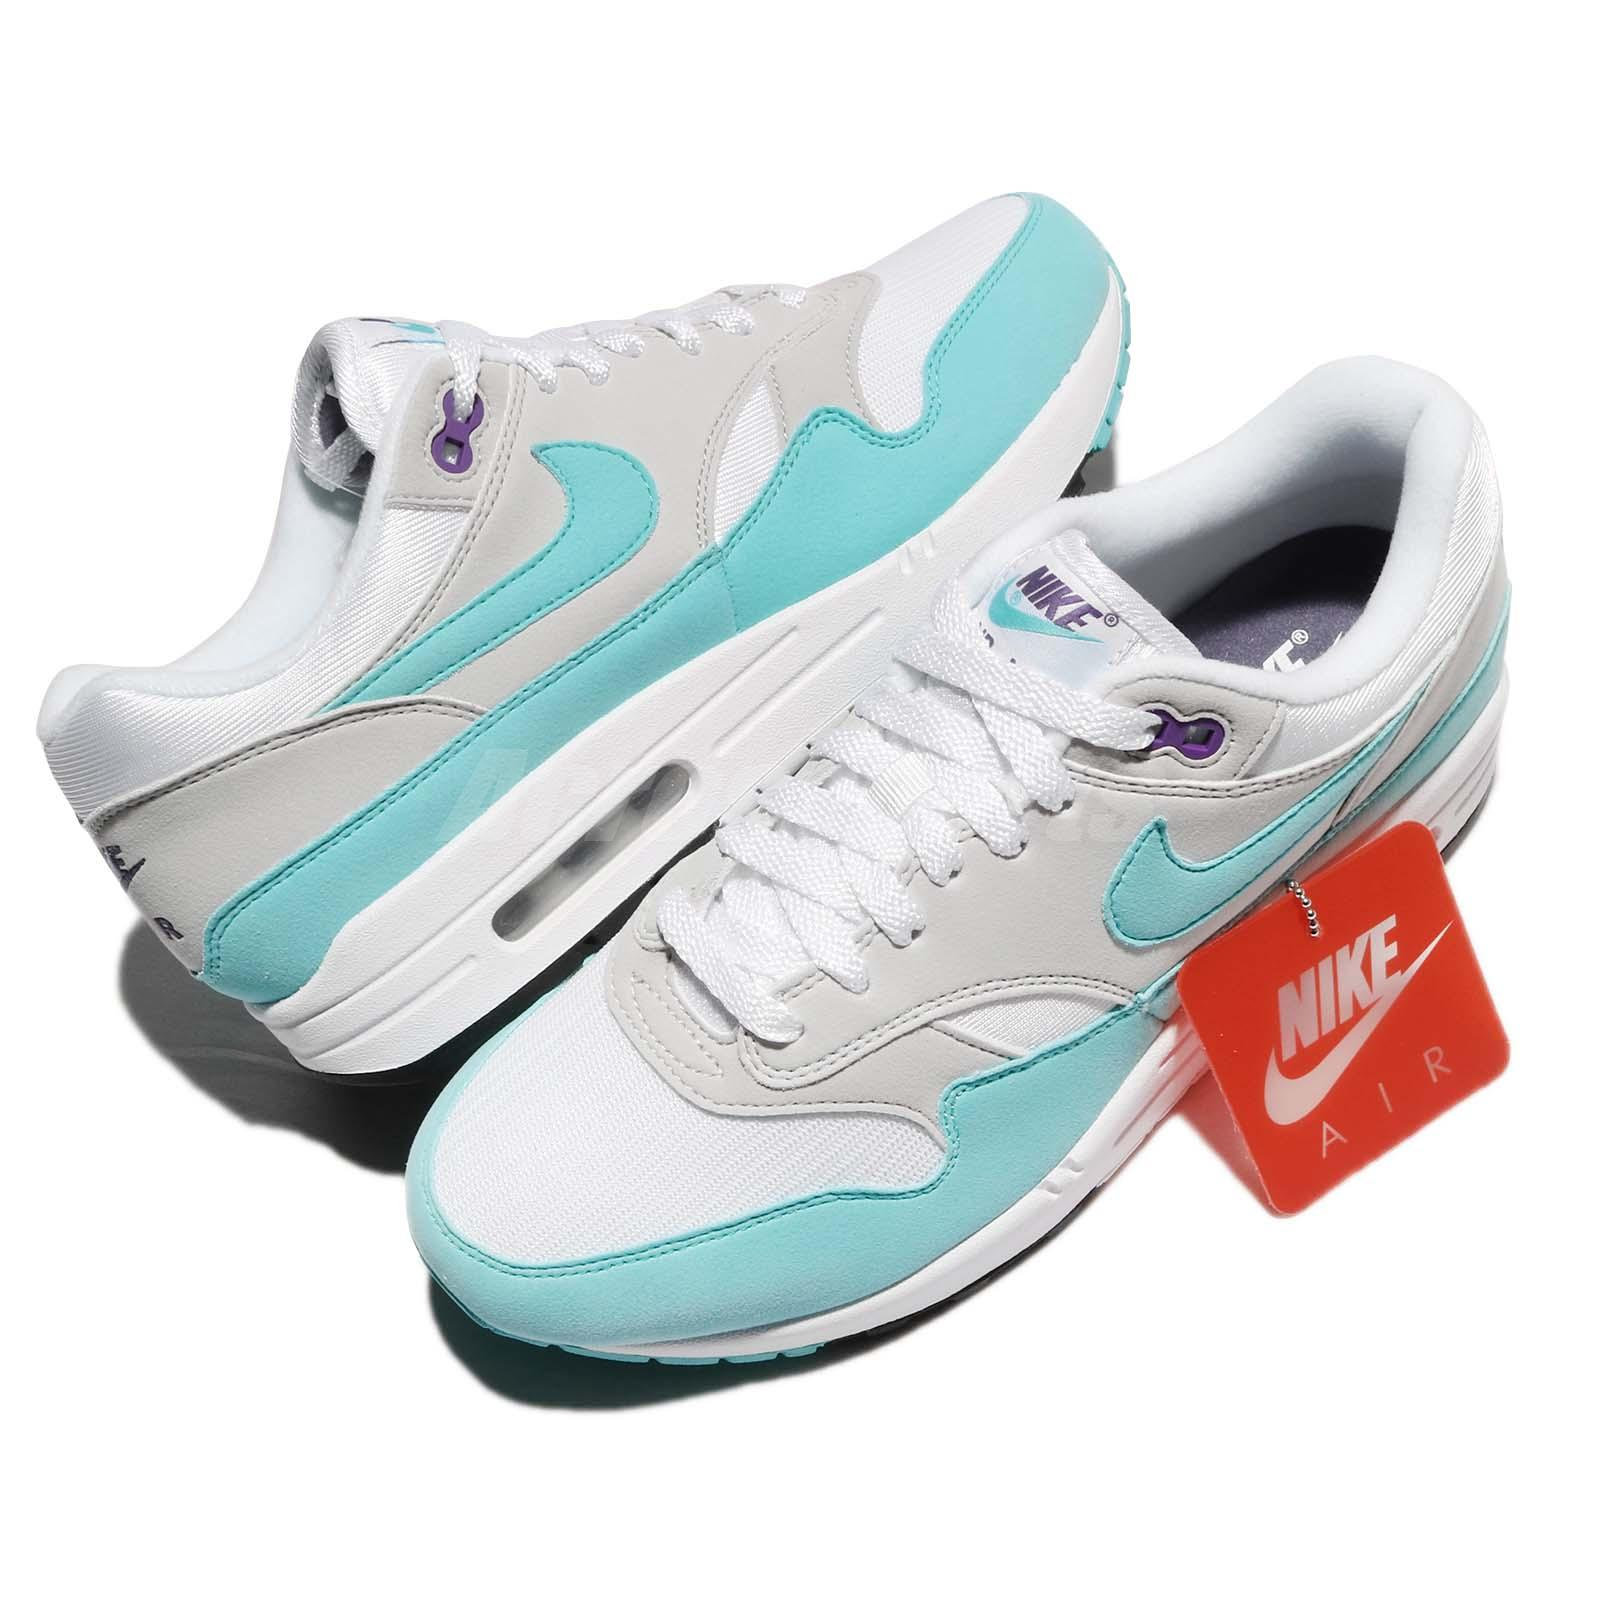 Details about Nike Air Max 1 Anniversary OG Aqua White Blue Men Running  Shoes 908375-105 99b5a6926